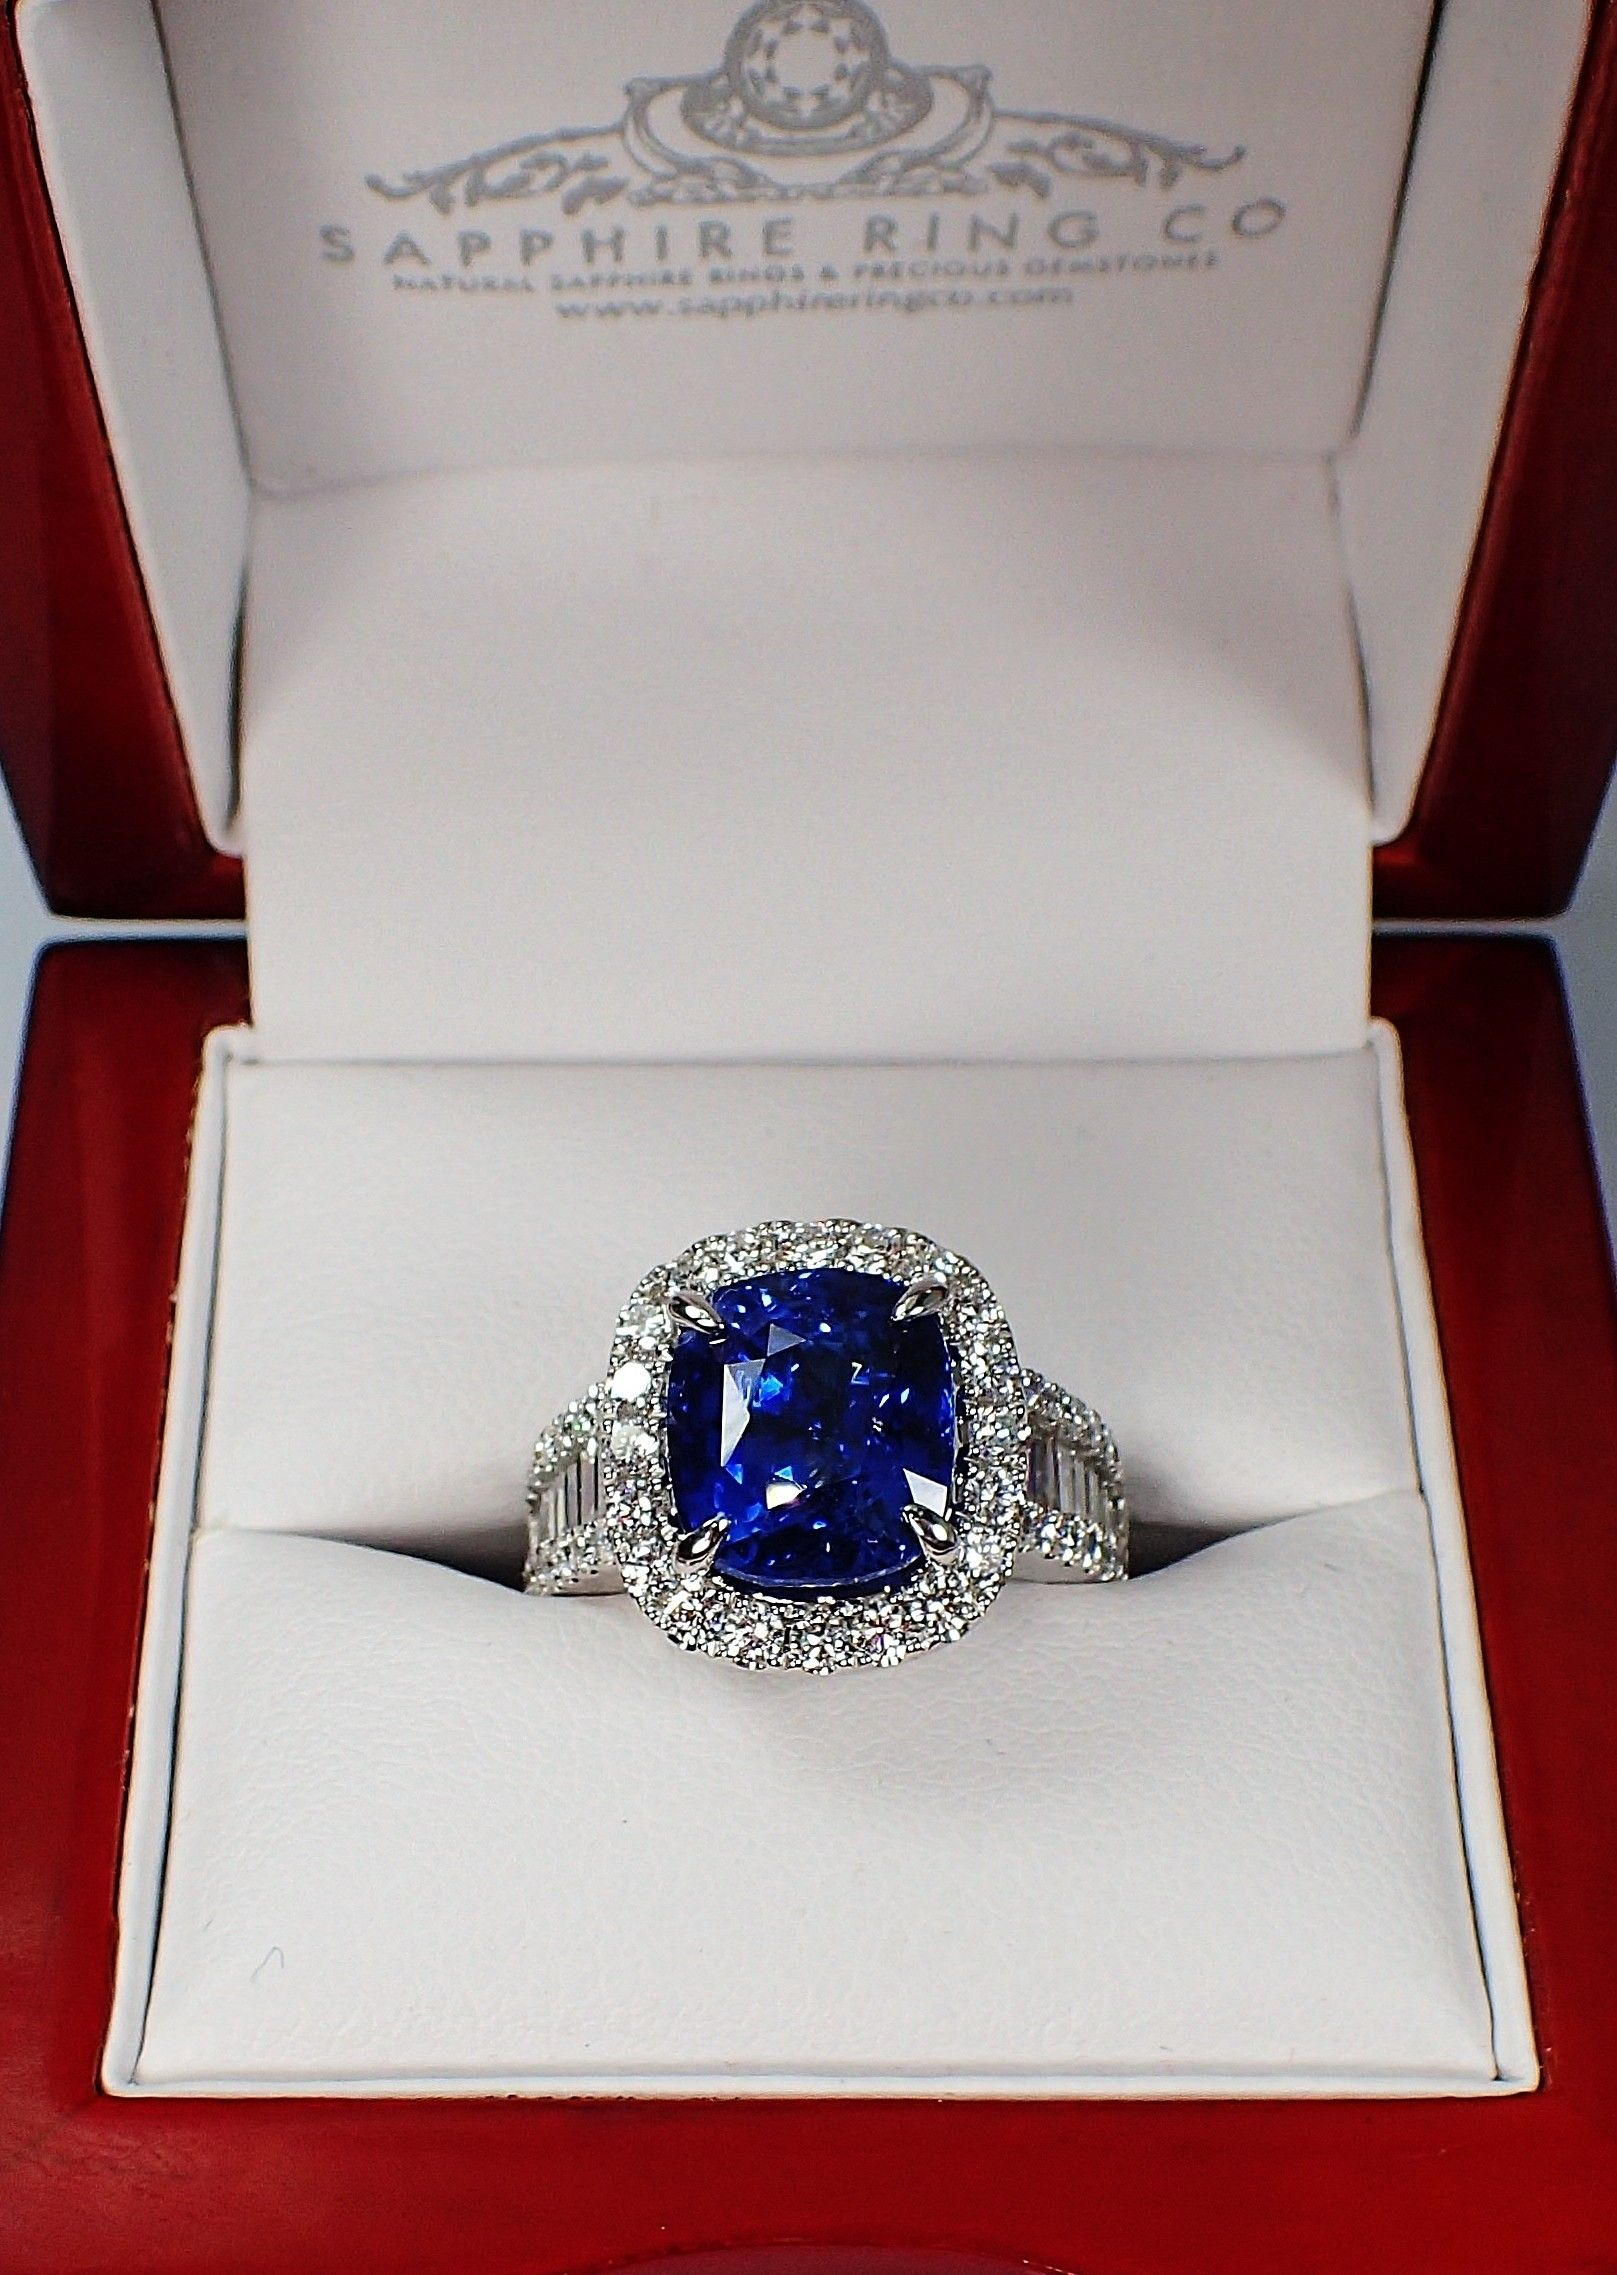 Search Results For Sapphire Jewelry Sapphire Engagement Rings 6 12 Ct Platinum Sapphire Ring 3167 Sapphire Engagement Ring Blue Color Change Sapphire Ring Platinum Sapphire Ring